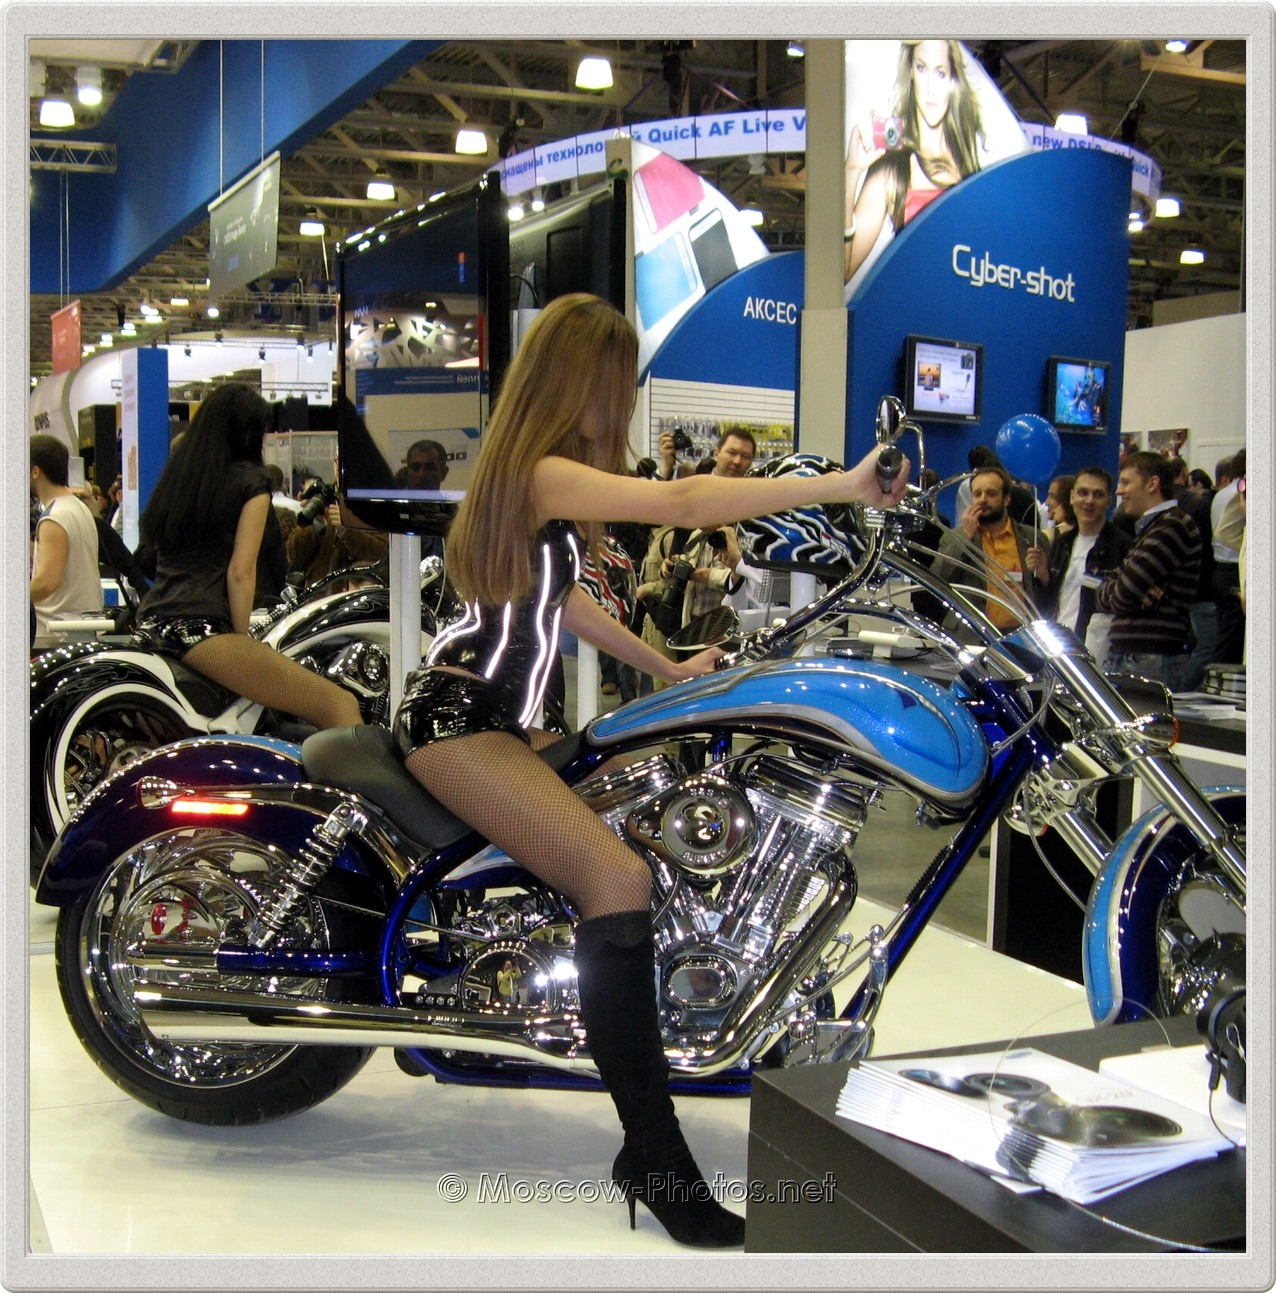 Hot Moscow girls on motorbikes